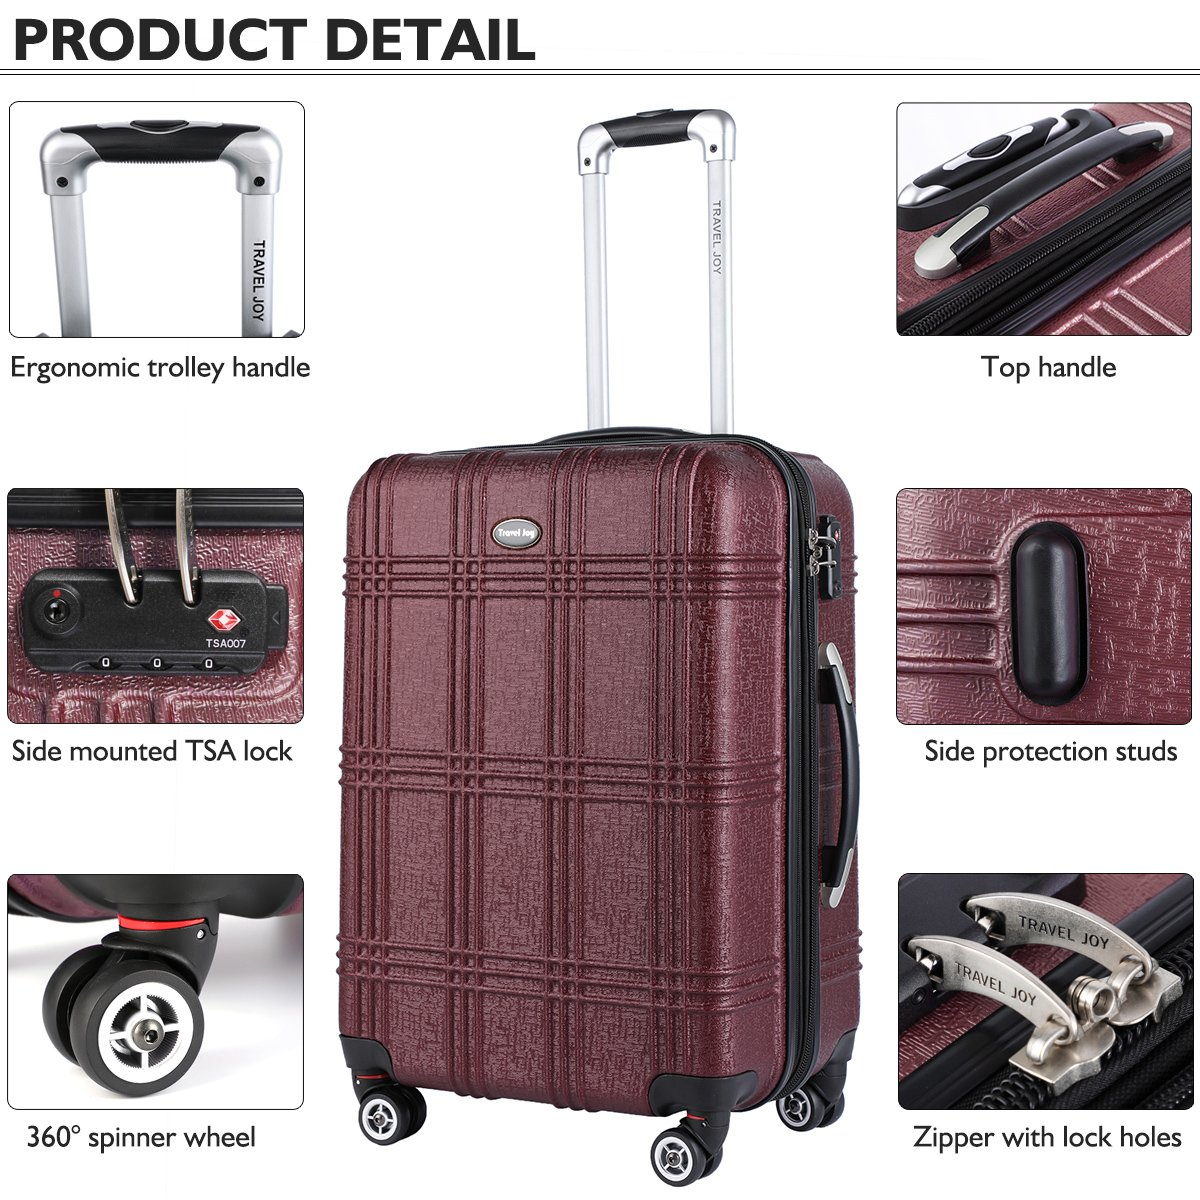 Expandable Carry On Luggage Lightweight Spinner Carry Ons TSA Hardside Luggage Suitcase, 20 inches (BURGUNDY) by Travel Joy (Image #4)